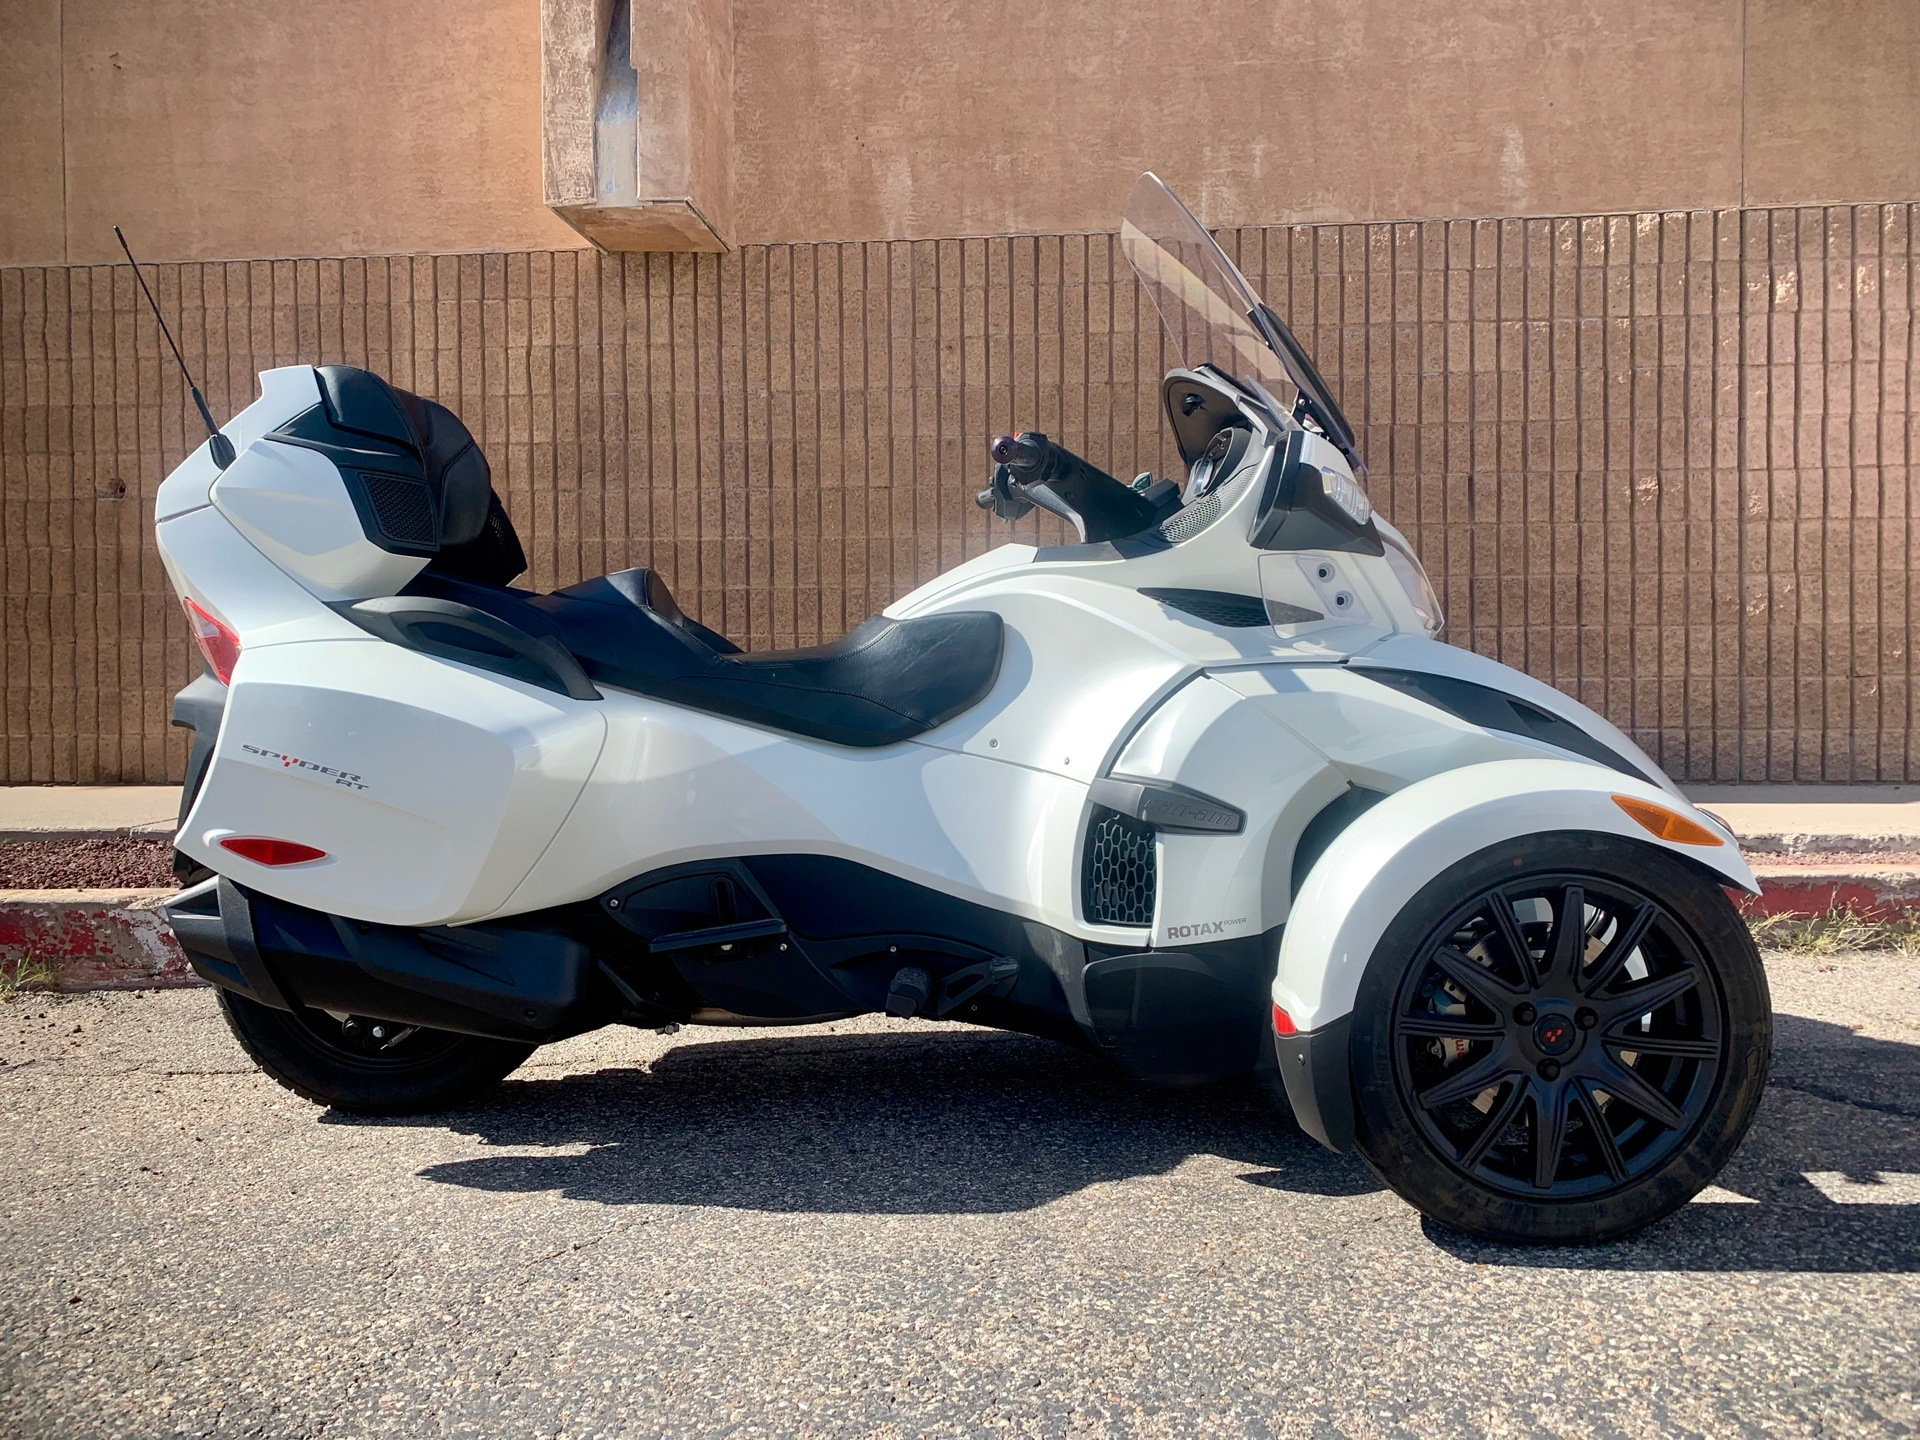 2018 Can-Am Spyder RT SE6 in Albuquerque, New Mexico - Photo 1